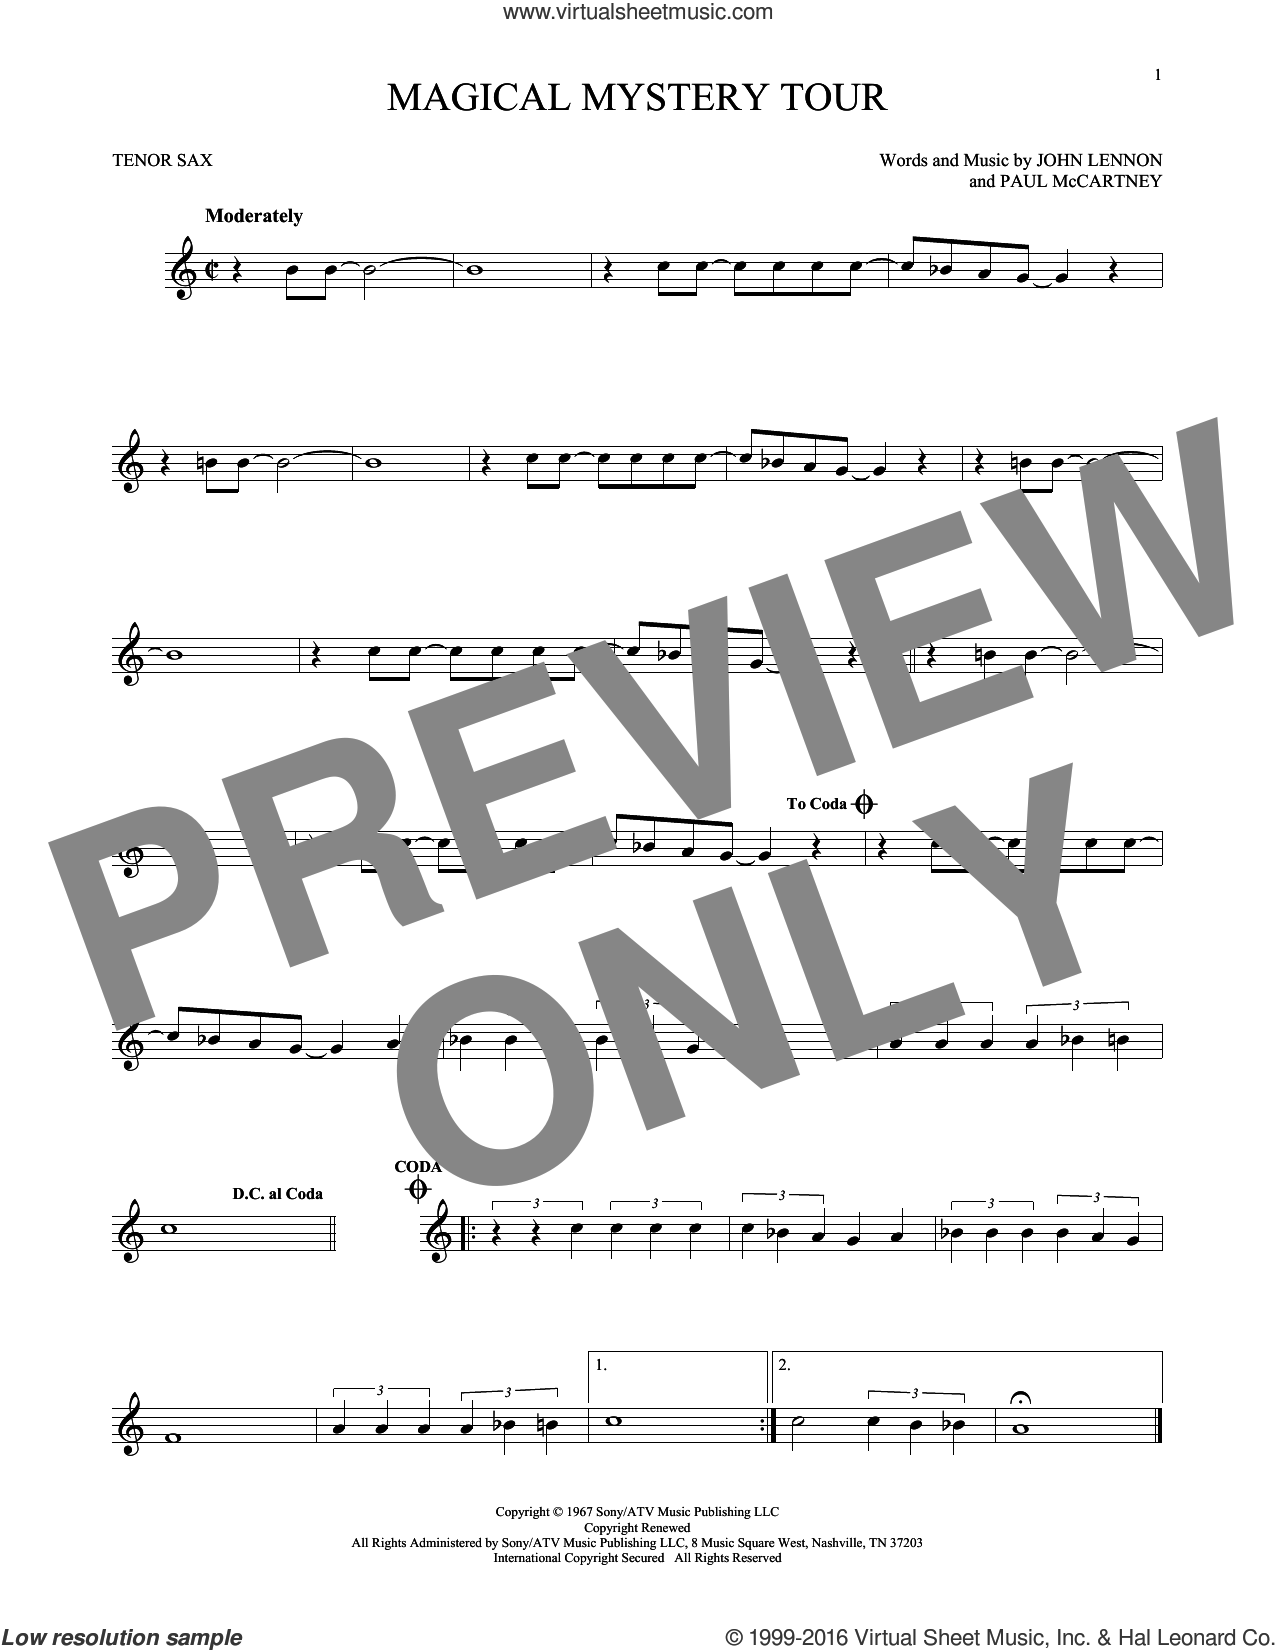 Magical Mystery Tour sheet music for tenor saxophone solo by The Beatles, John Lennon and Paul McCartney, intermediate skill level